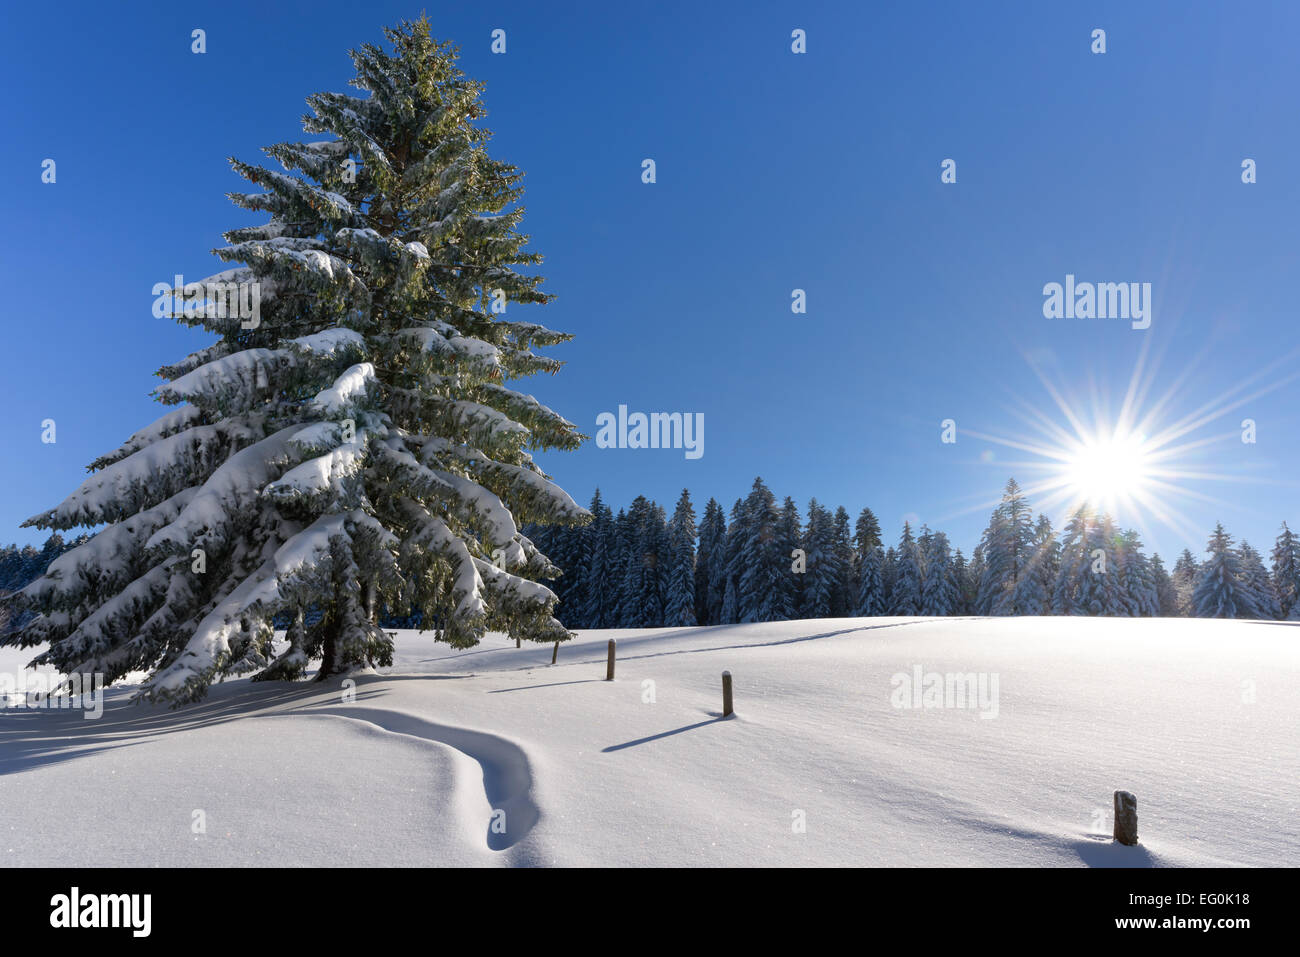 Switzerland, St. Gallen, Sun shining in clear sky over fresh snow and spruce tree - Stock Image